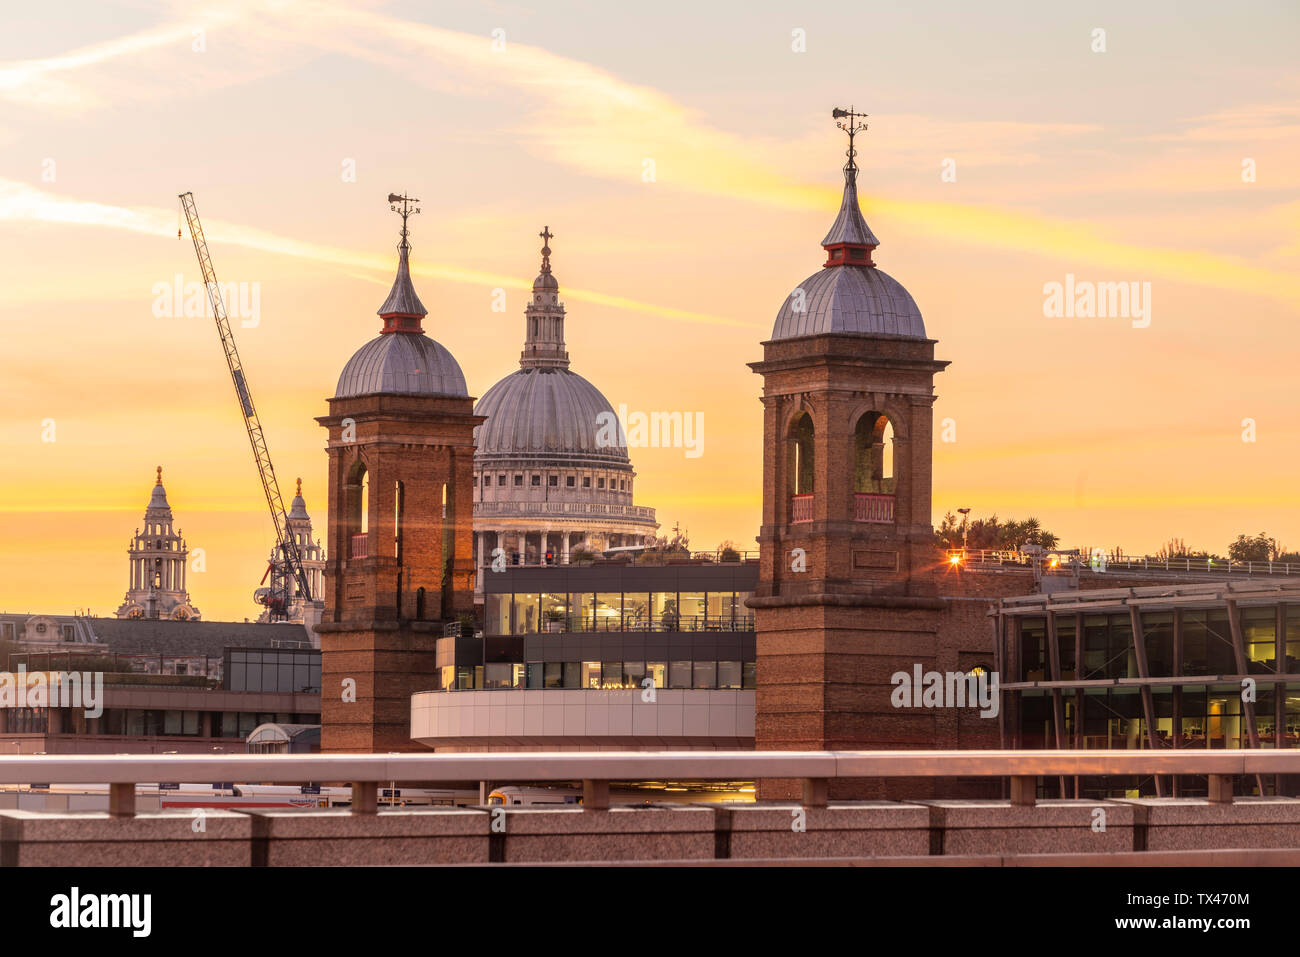 UK, London, The dome of St. Paul's Cathedral seen from the London Bridge - Stock Image